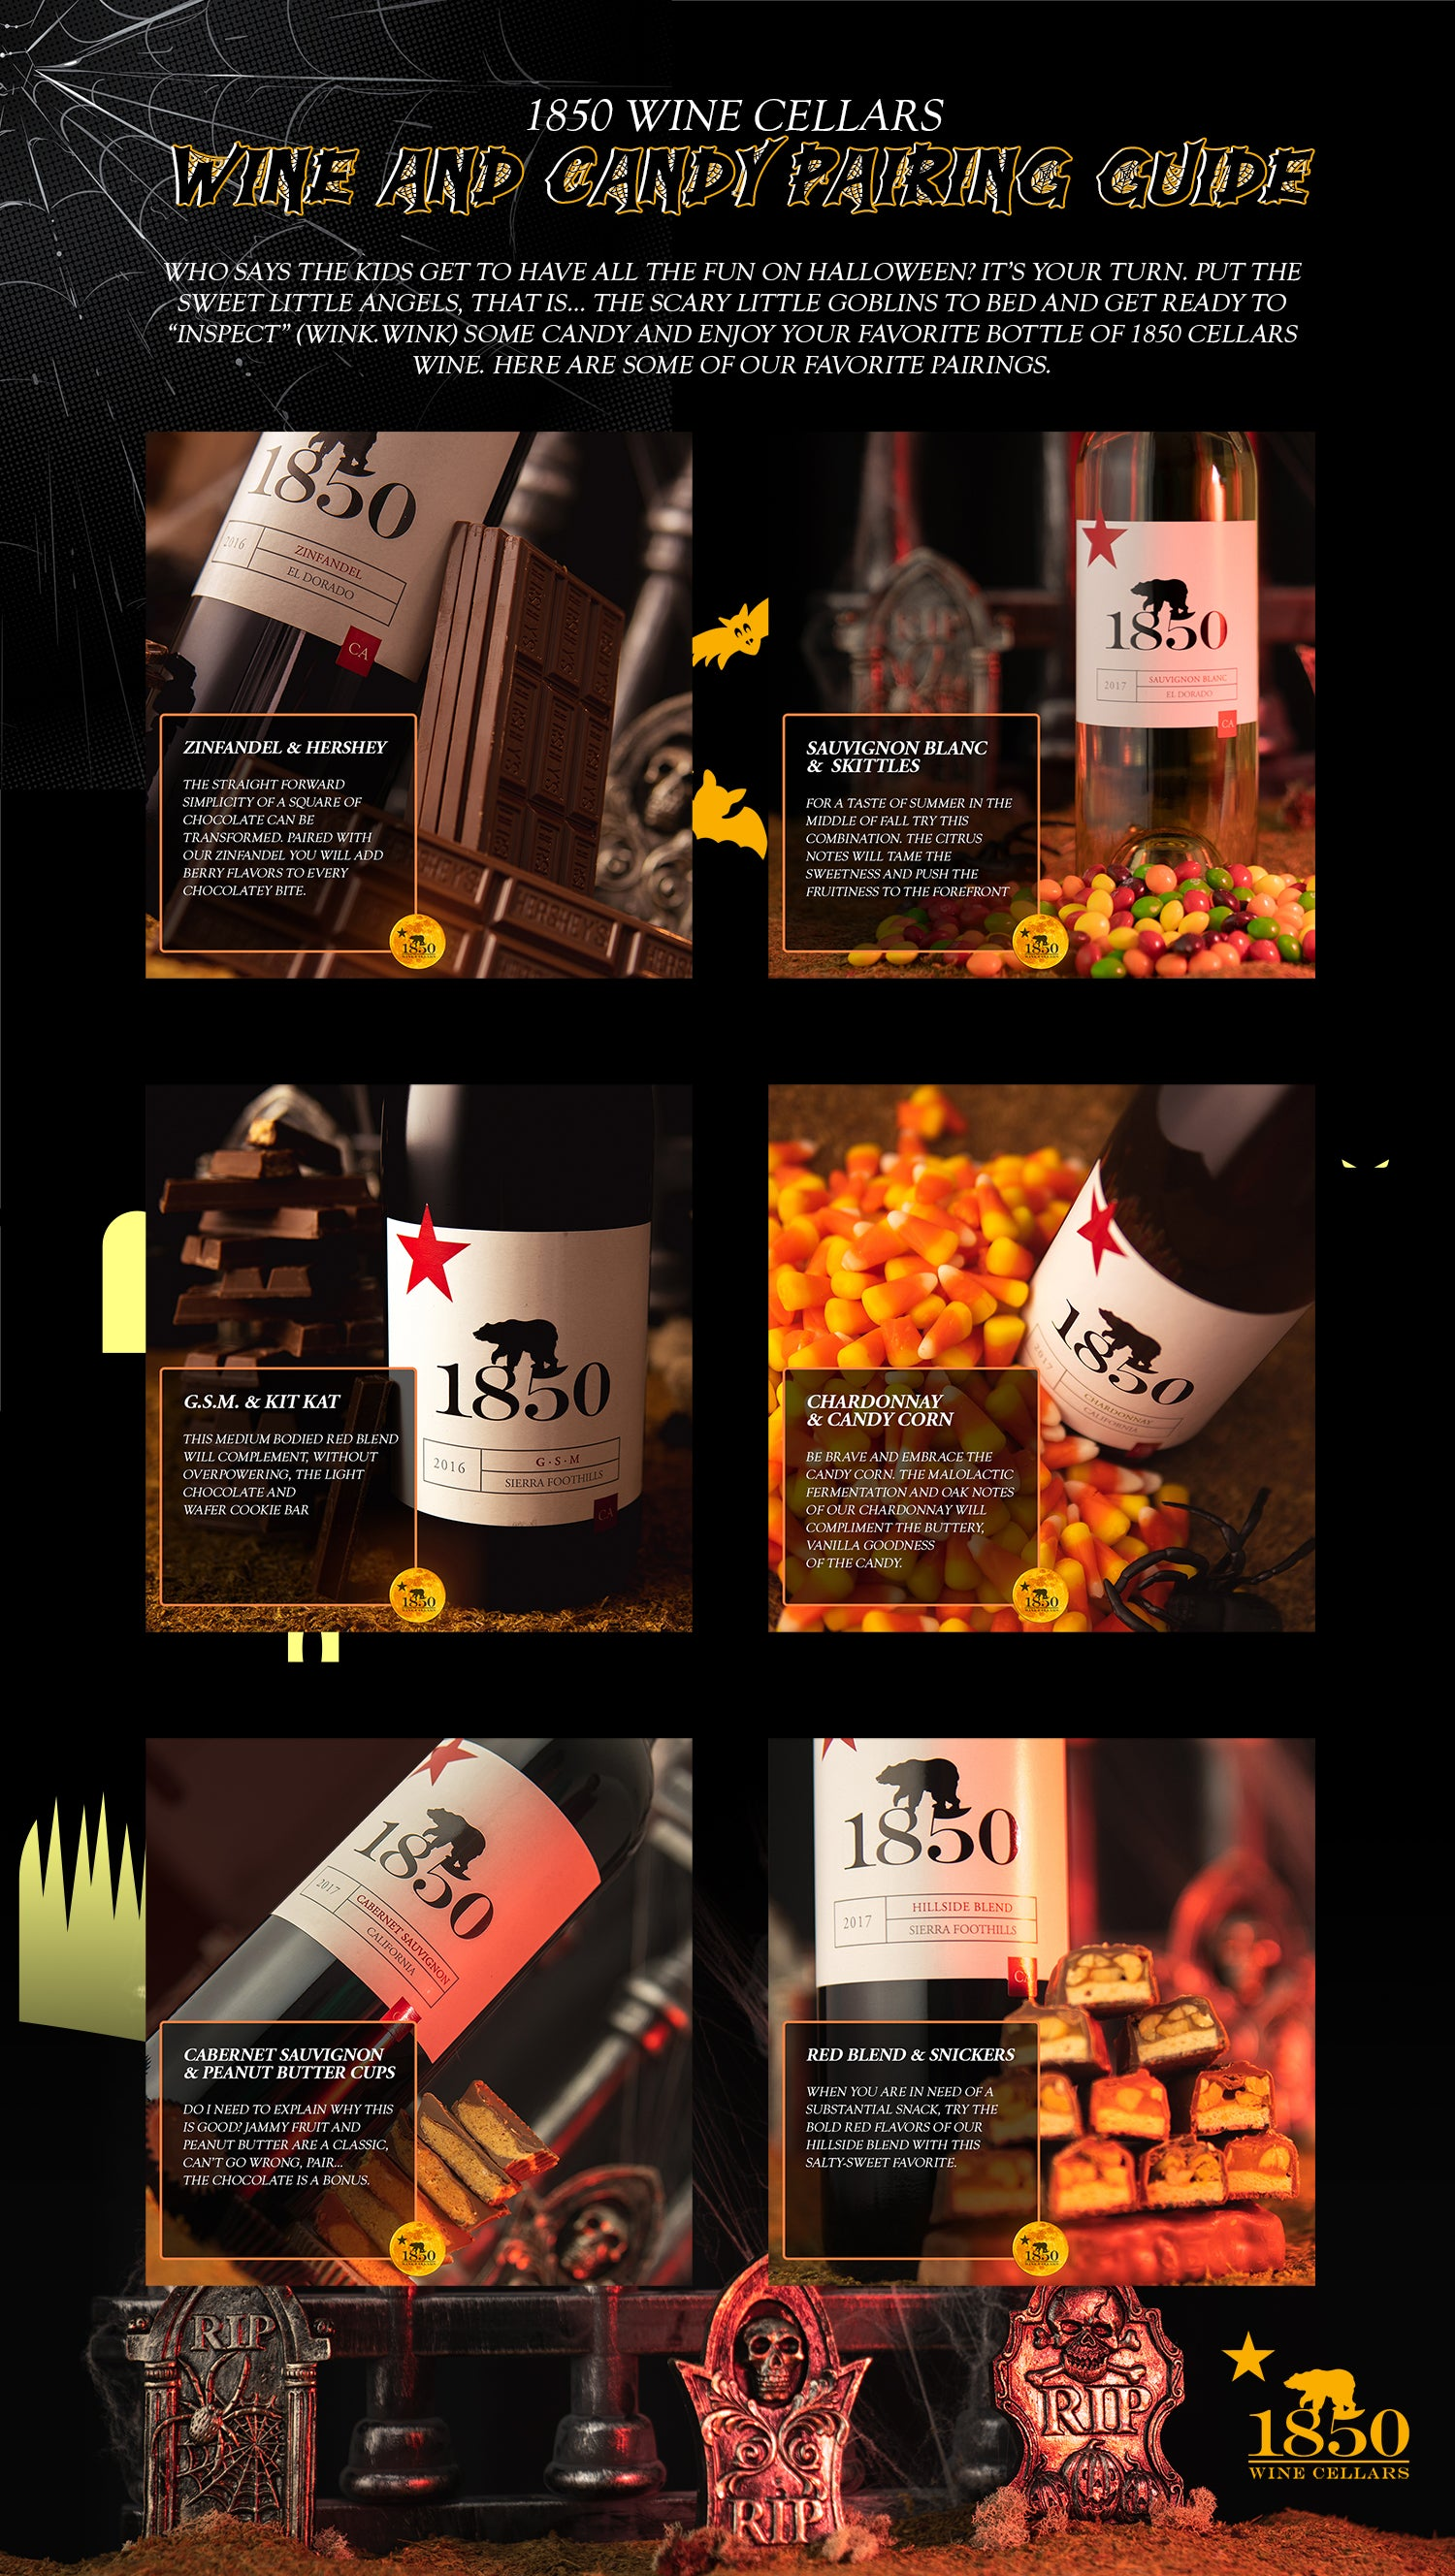 1850 Wine Cellars Halloween Wine And Candy Pairing Guide Infographic